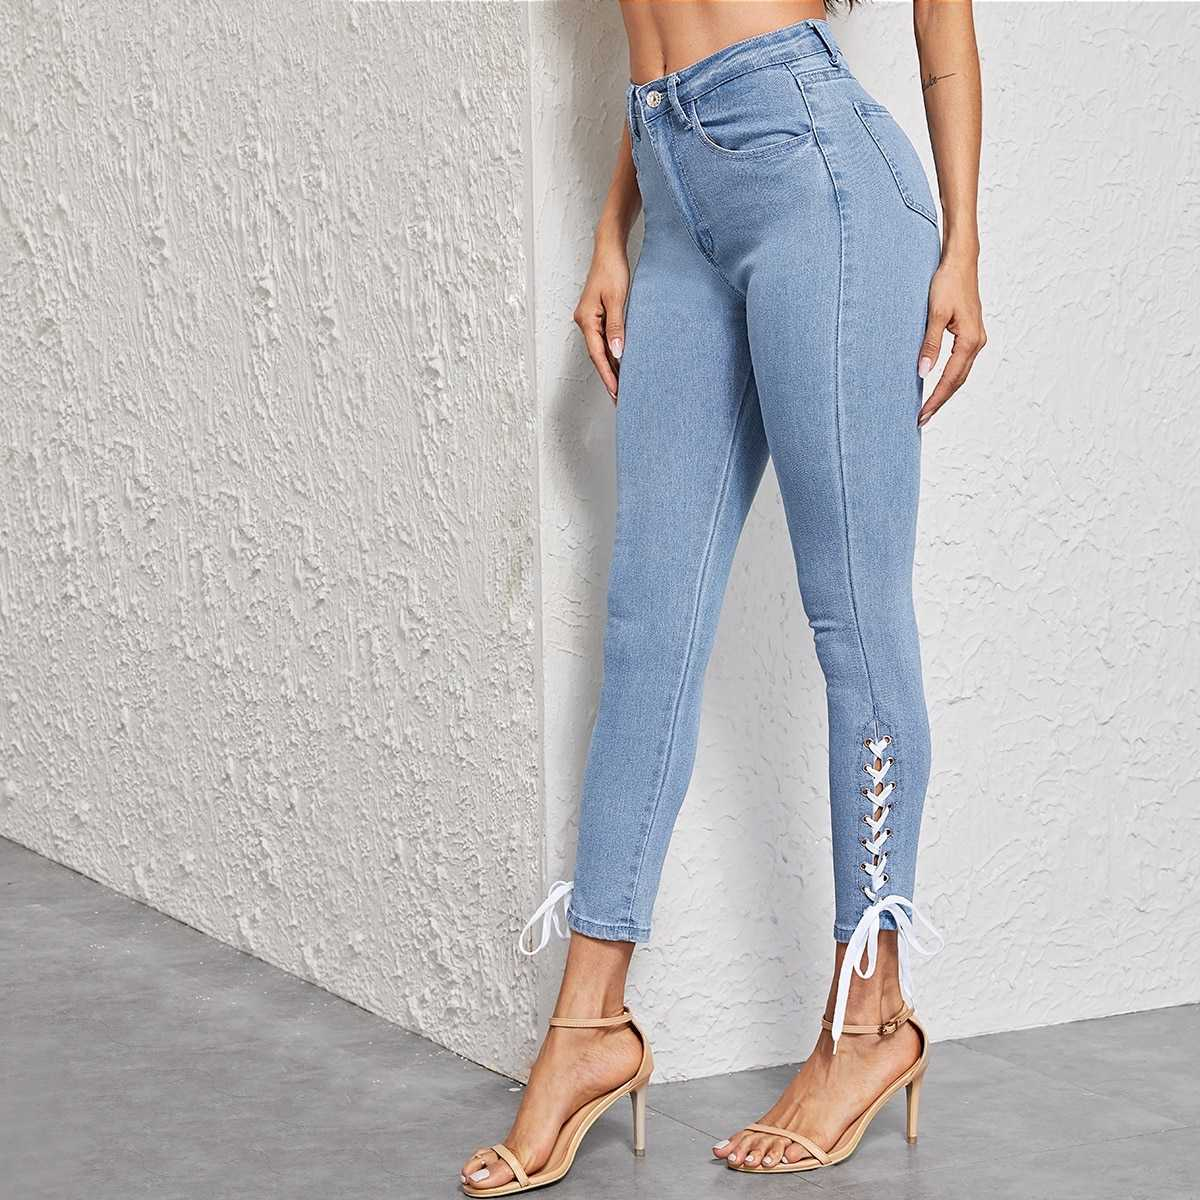 Bleach Wash Lace Up Detail Skinny Jeans in Blue by ROMWE on GOOFASH